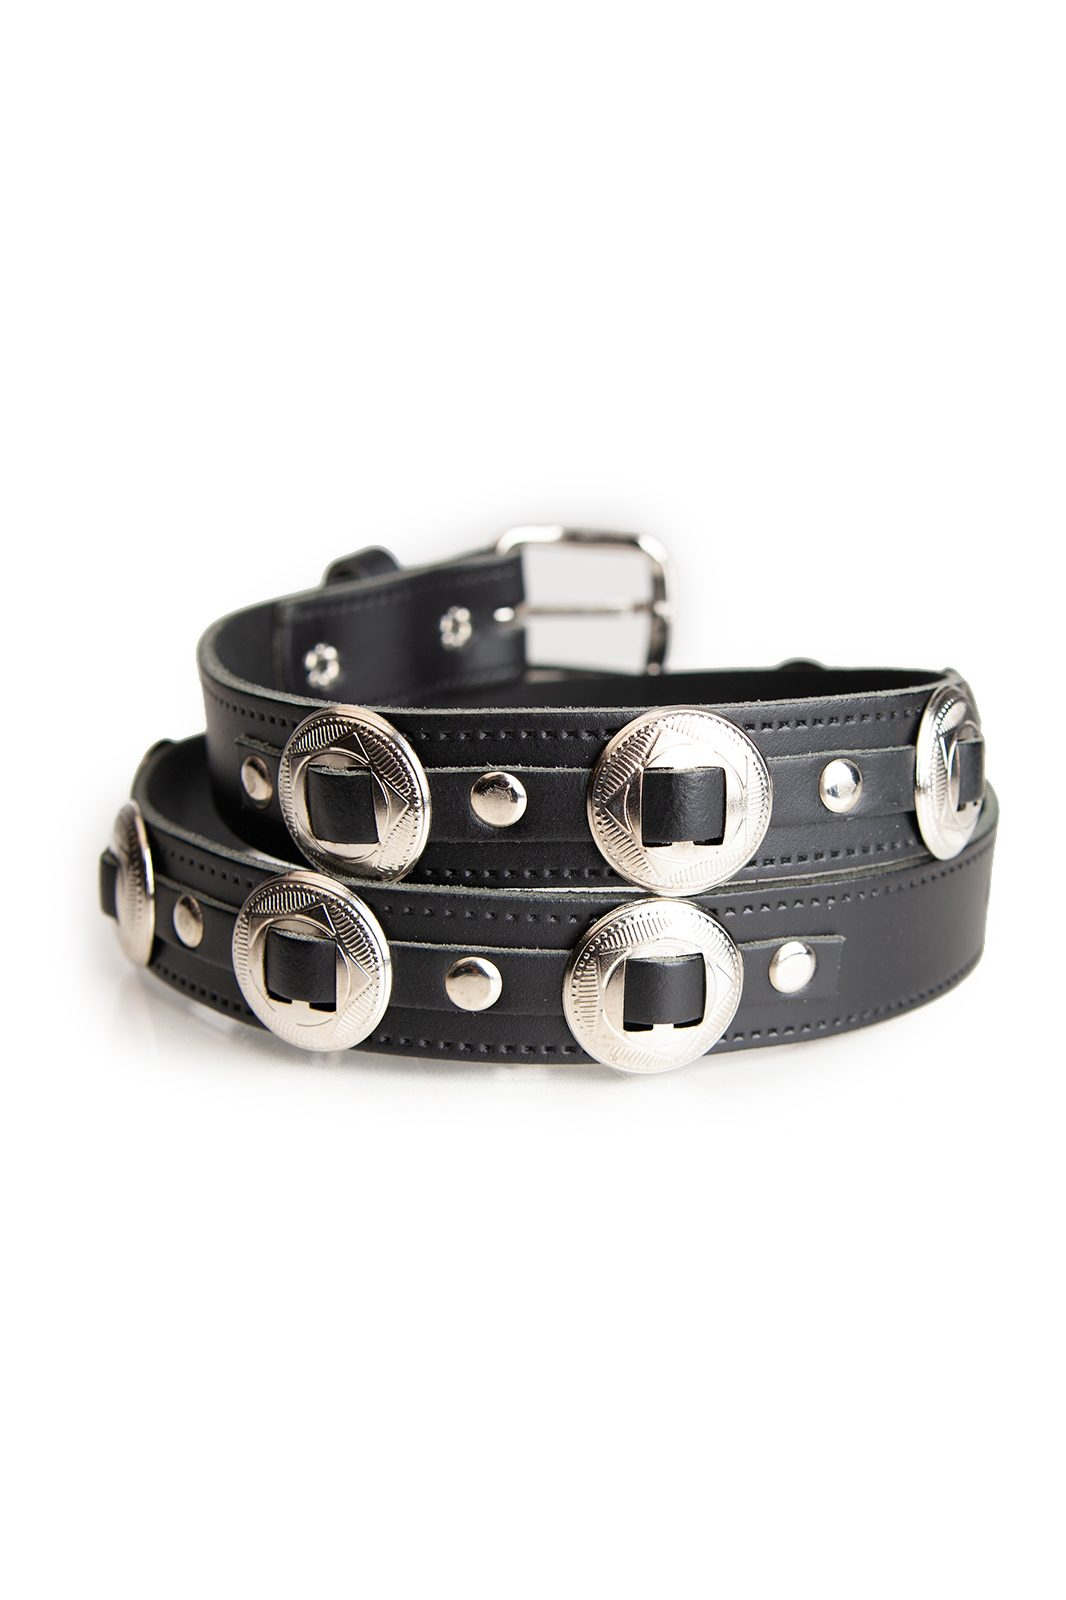 25mm Concho Leather Belt Black